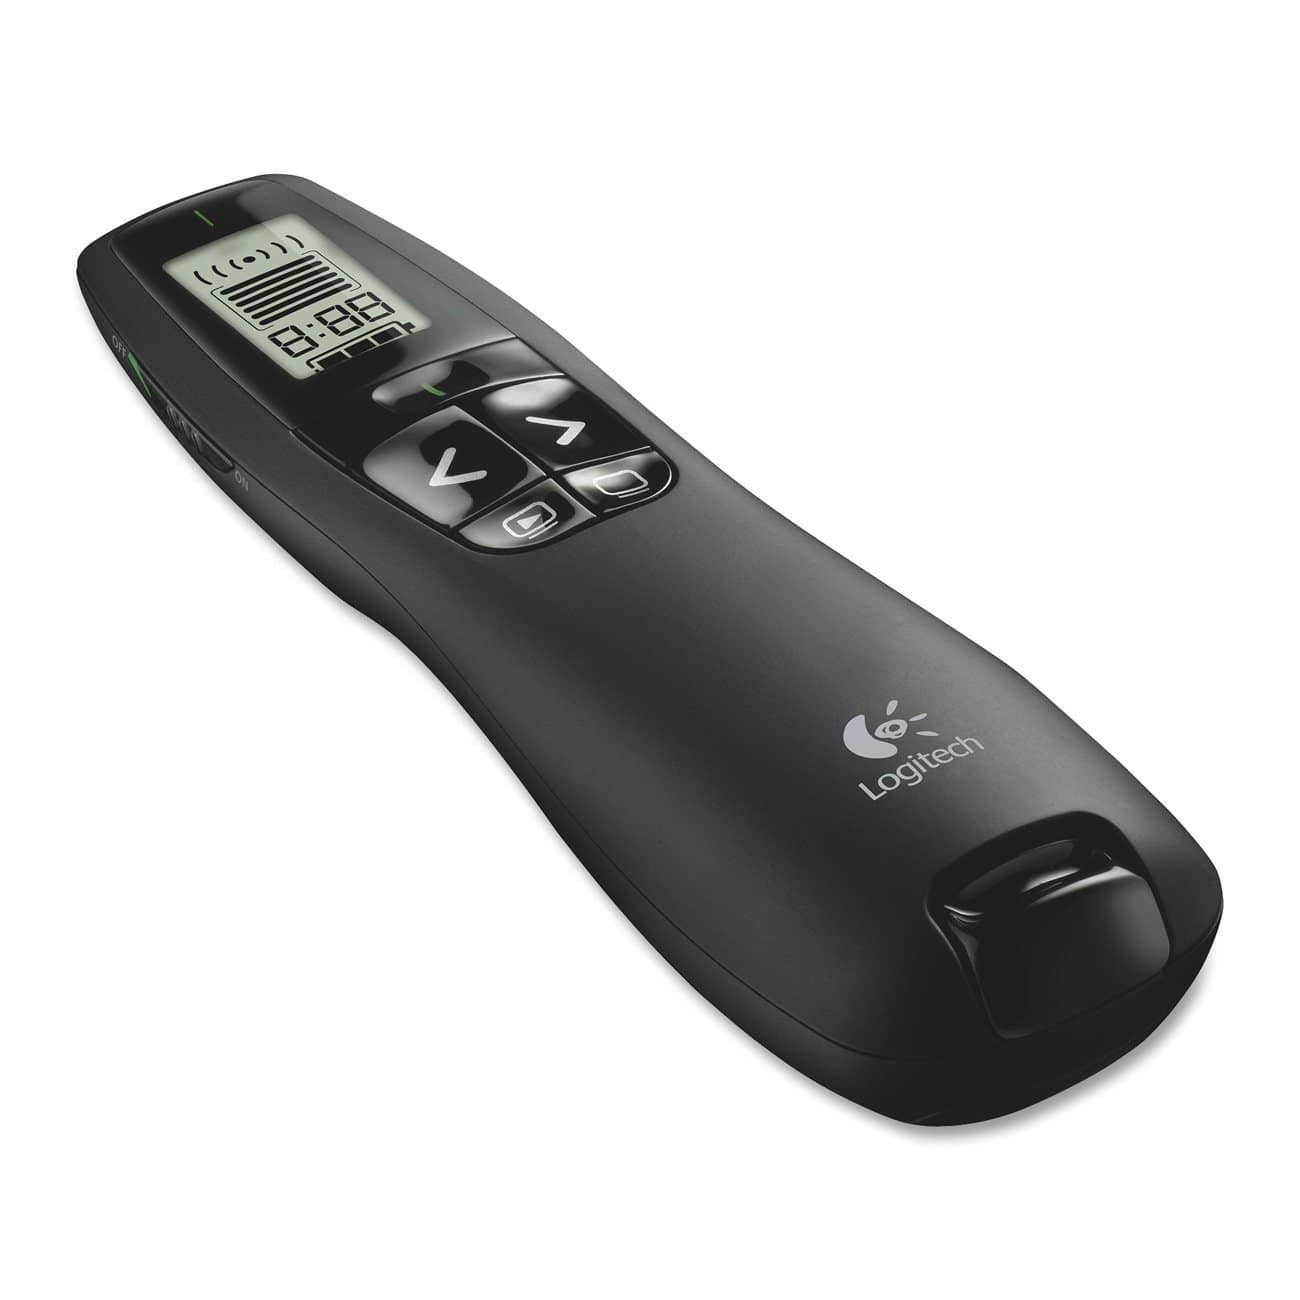 Logitech Professional Presenter R800, Presentation Wireless Presenter with Laser Pointer Green $49.99